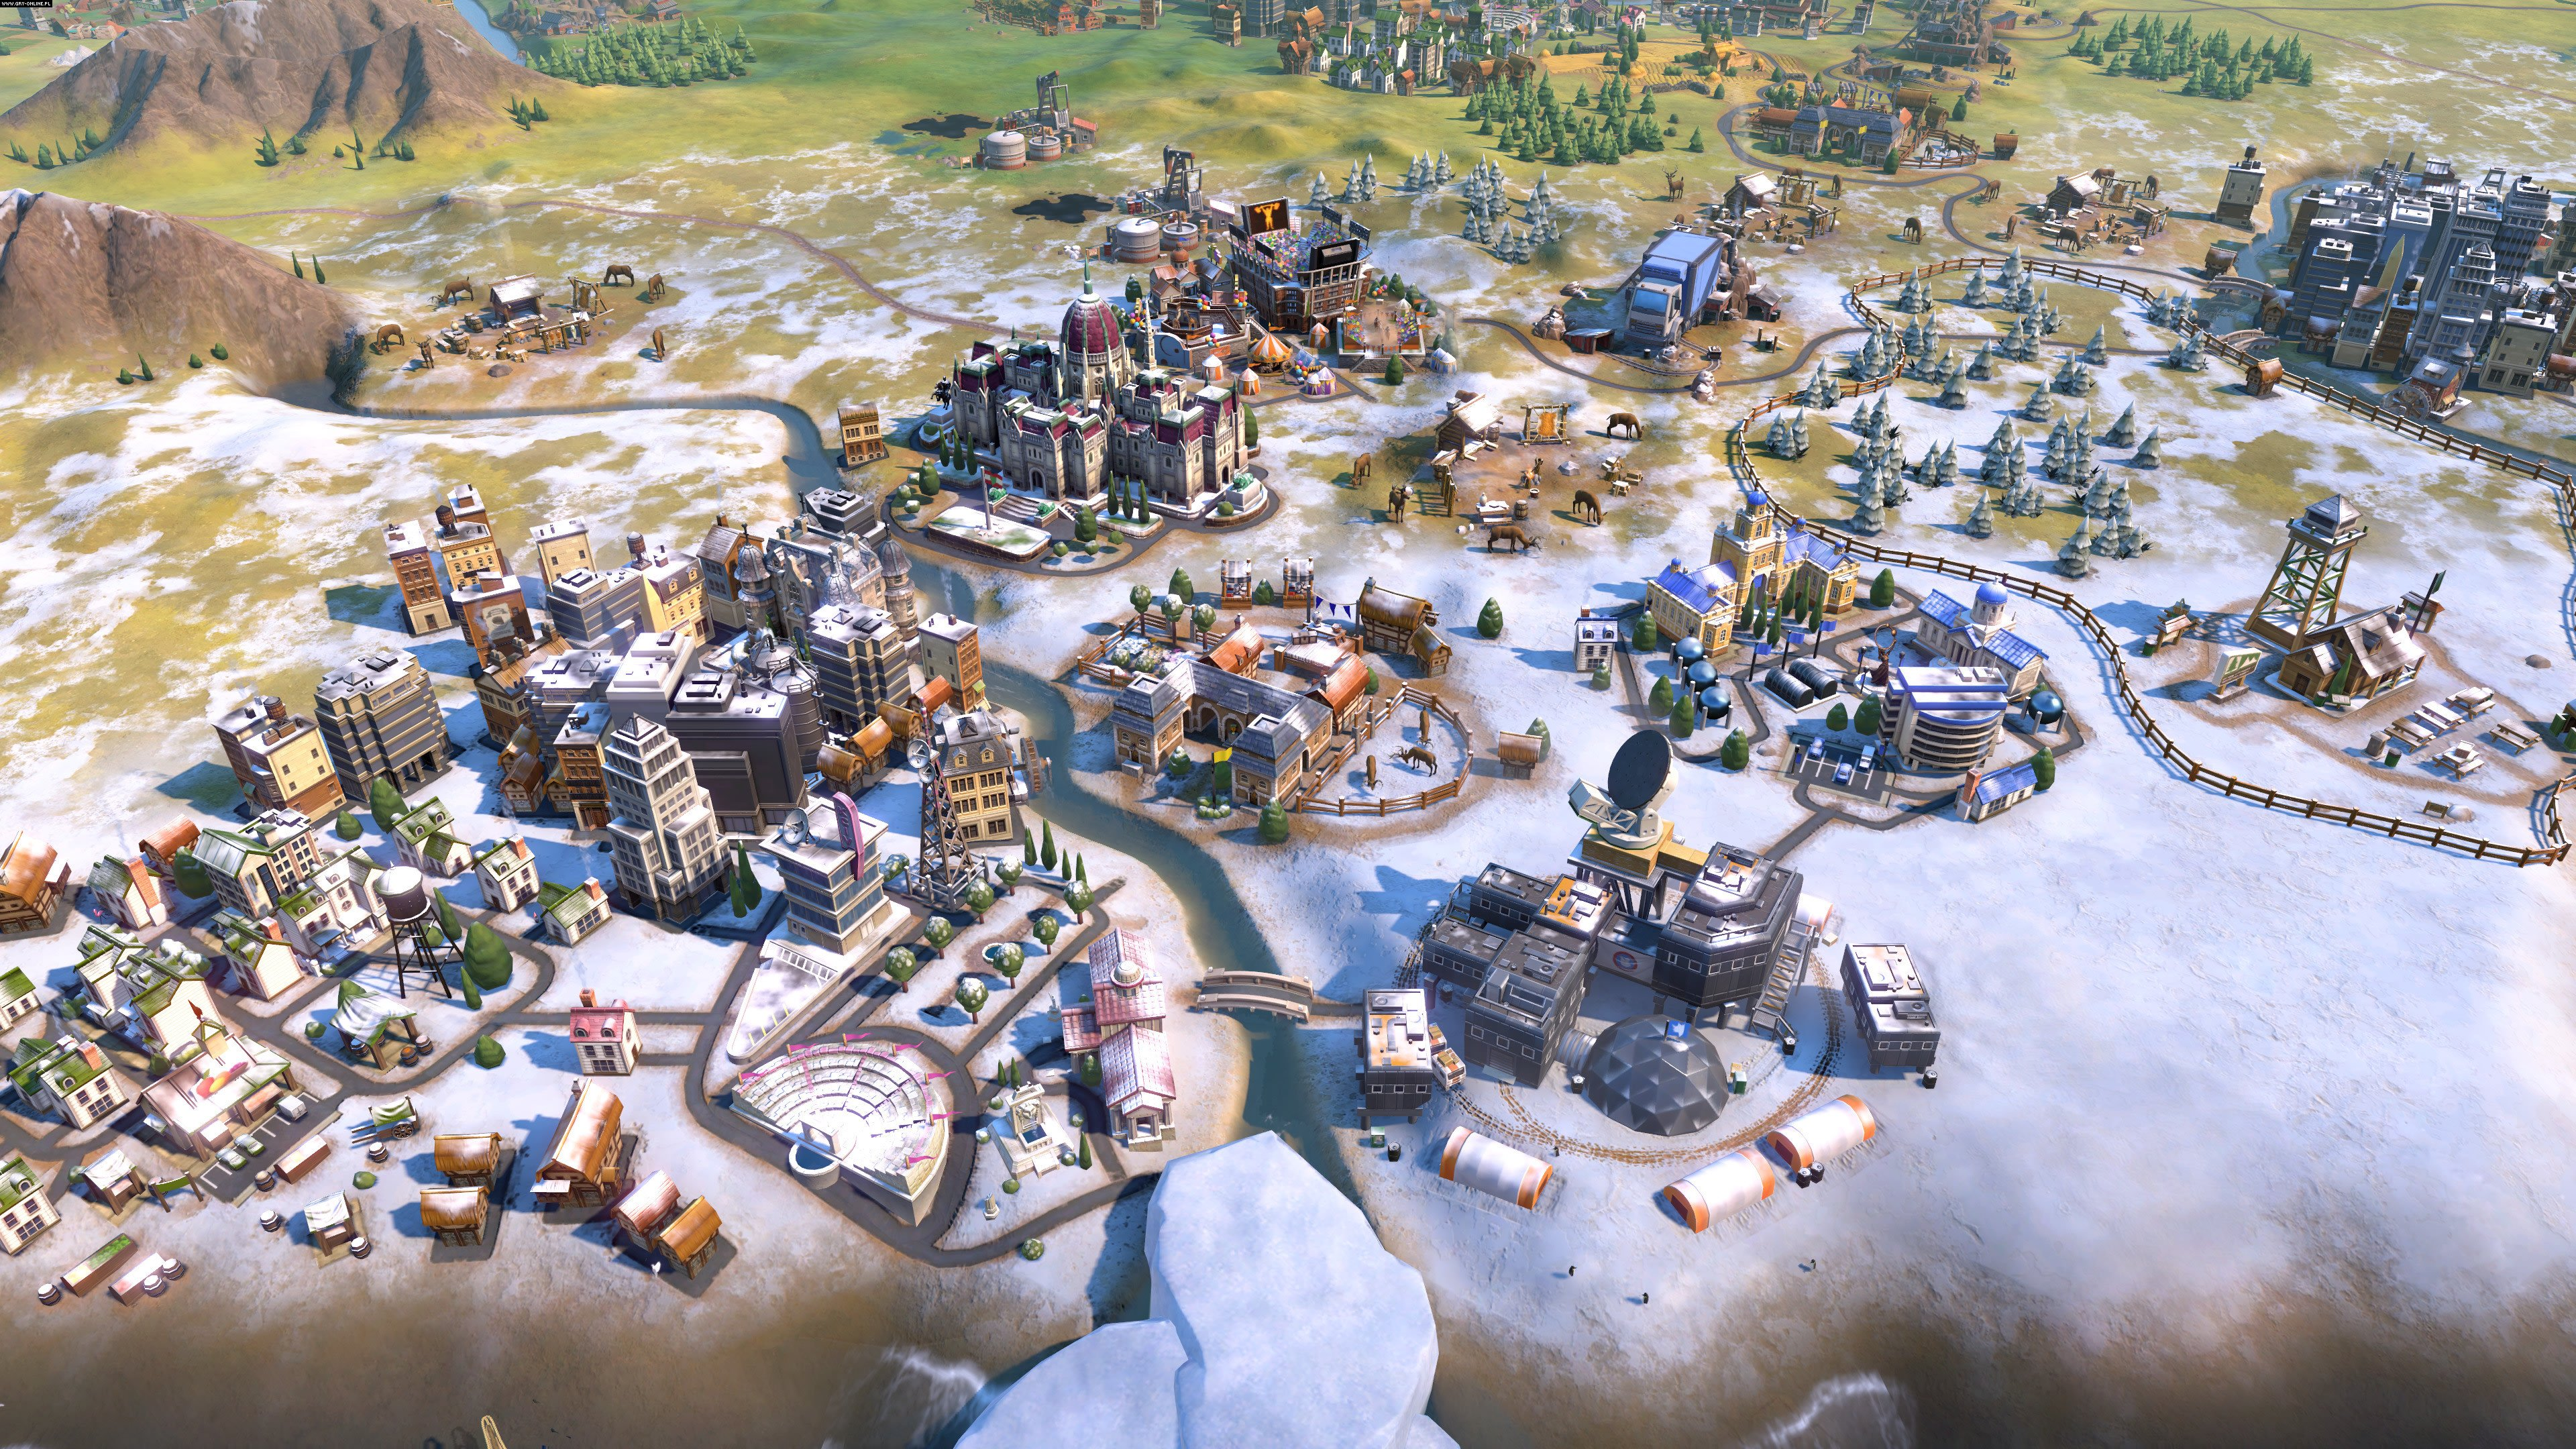 Sid Meier's Civilization VI: Gathering Storm PC Games Image 4/20, Firaxis Games, 2K Games